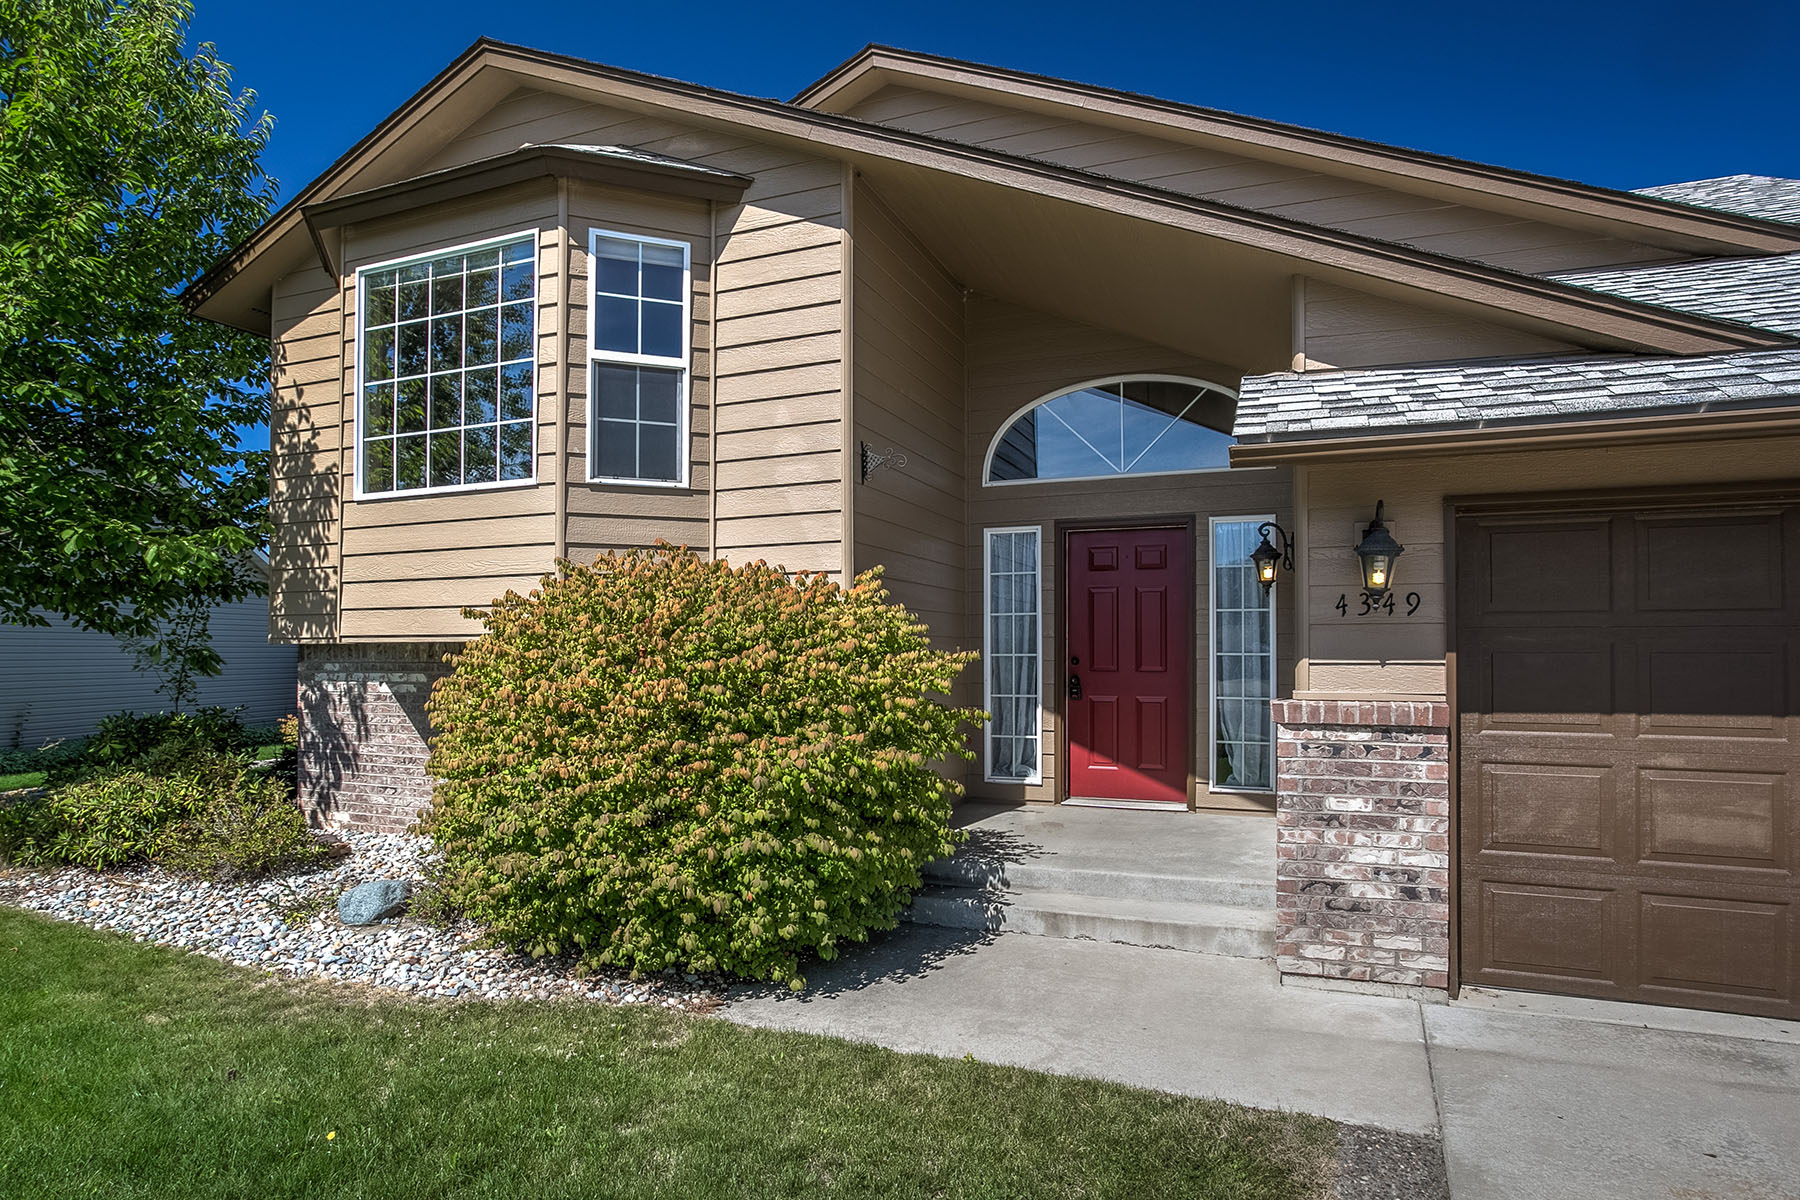 Single Family Home for Sale at Lovely Home in Desirable Neighborhood! 4349 N Deerfield Dr Coeur D Alene, Idaho, 83815 United States